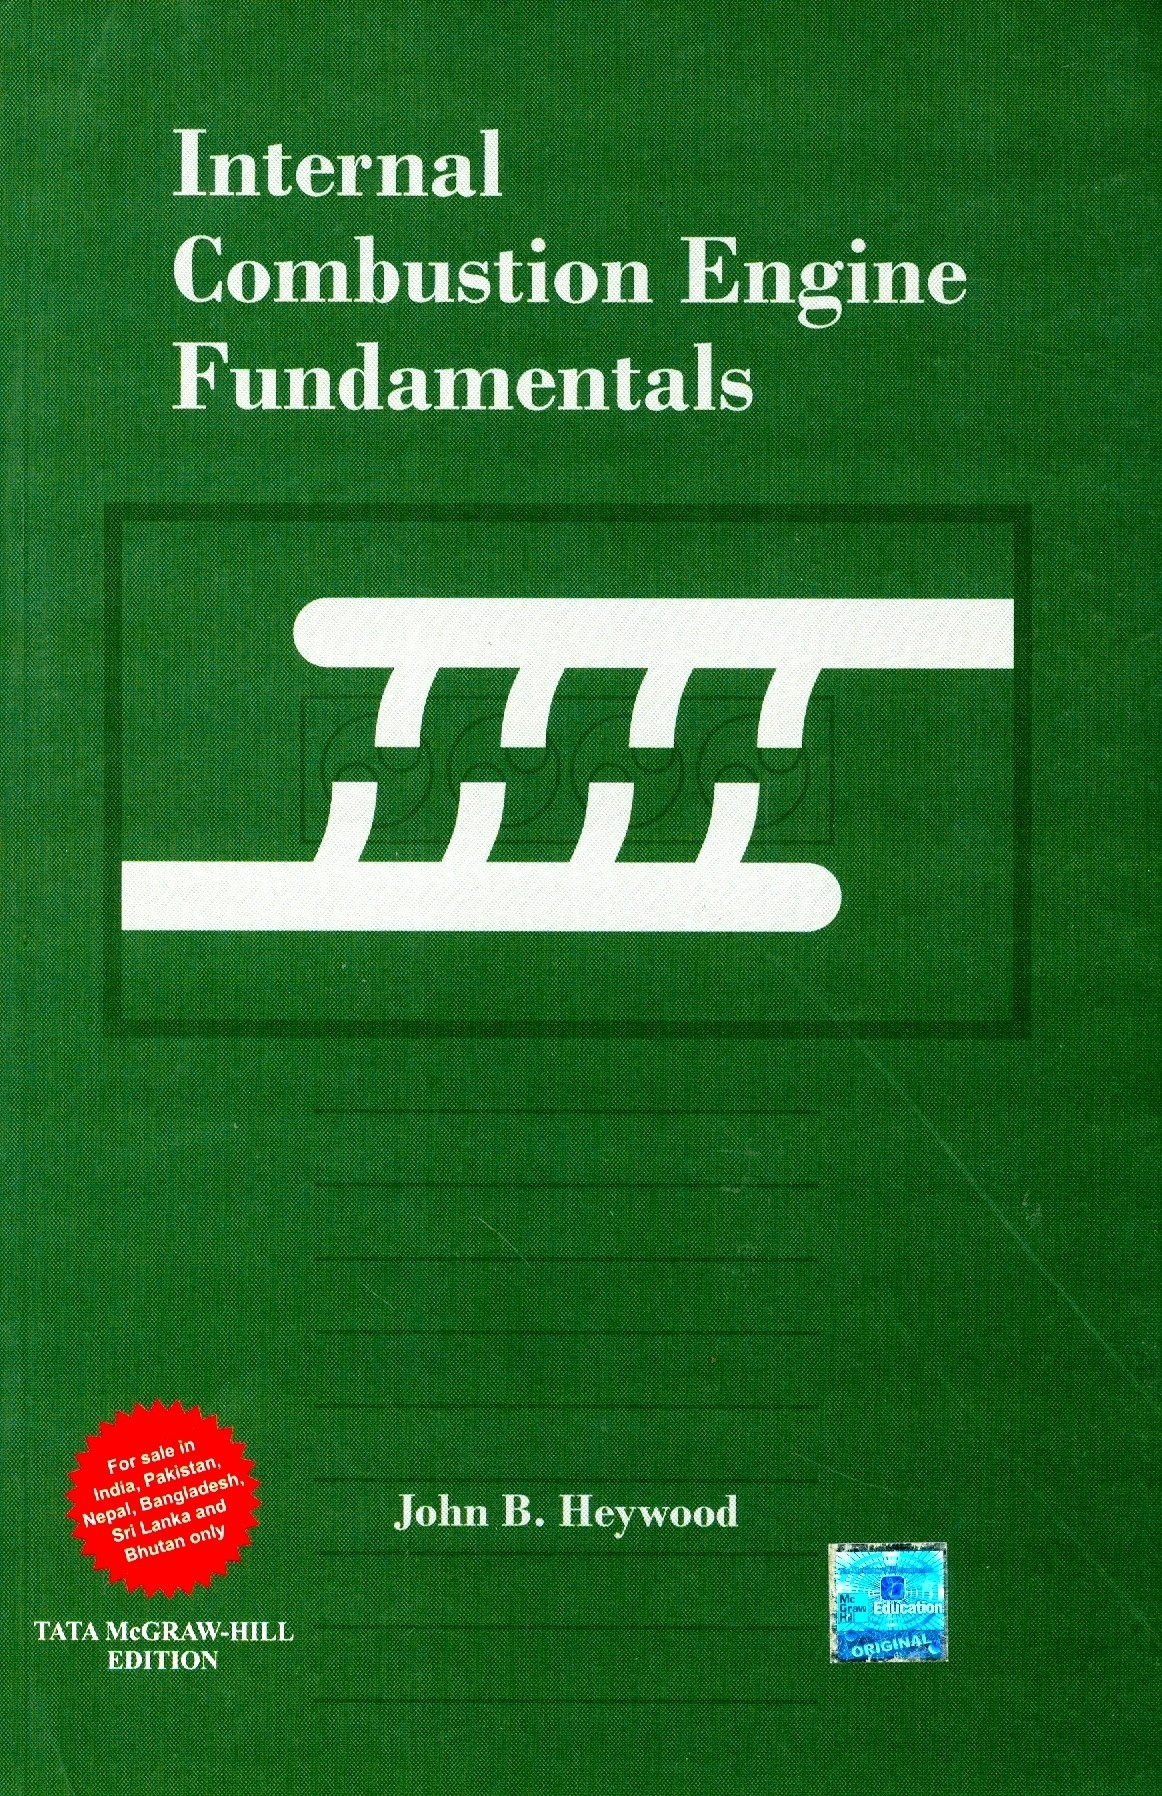 Internal Engine Fundamentals auto reference